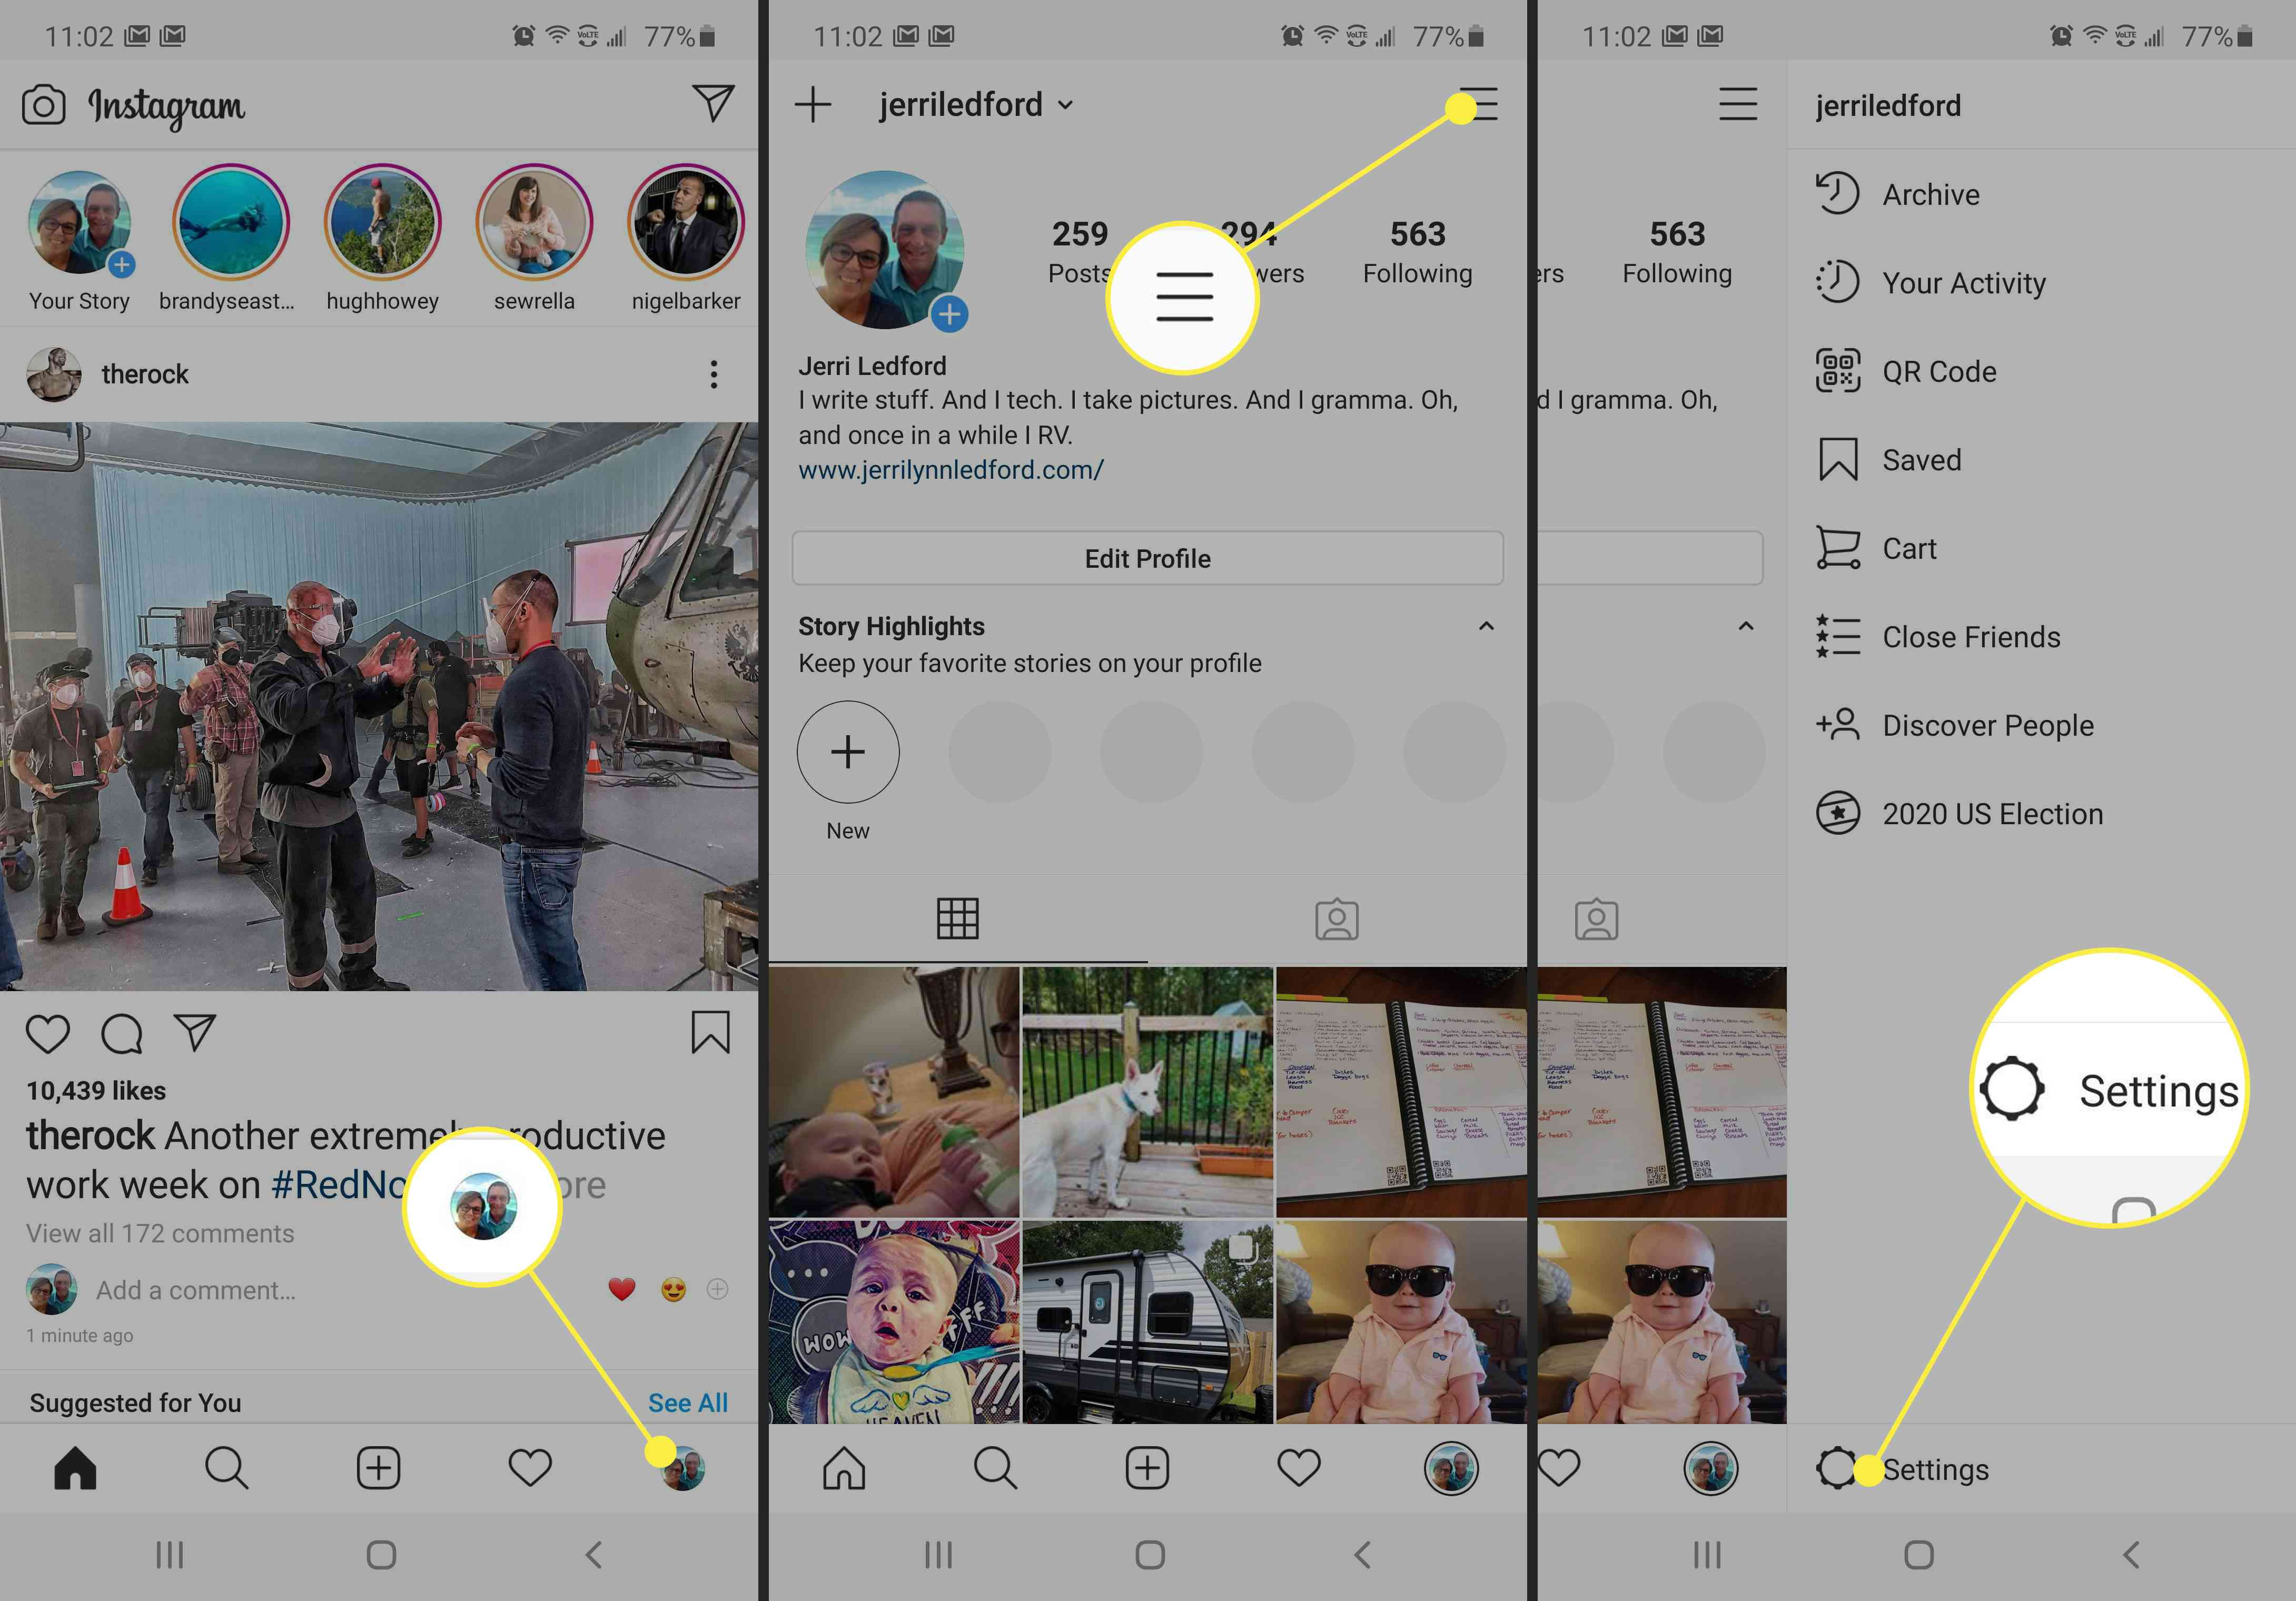 Screenshots showing the location of Settings in Instagram.